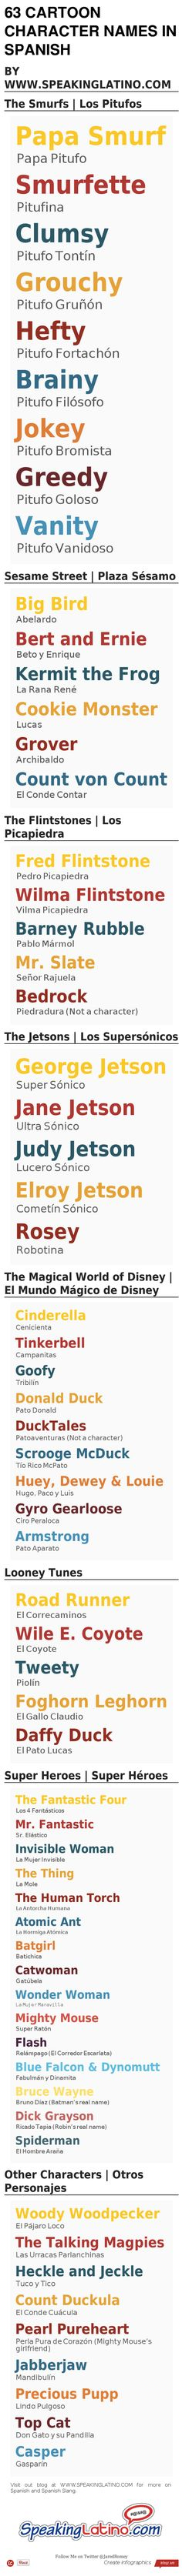 Infographic: 63 Cartoon Character English Names in Spanish #Infographic #Cartoons #Spanish